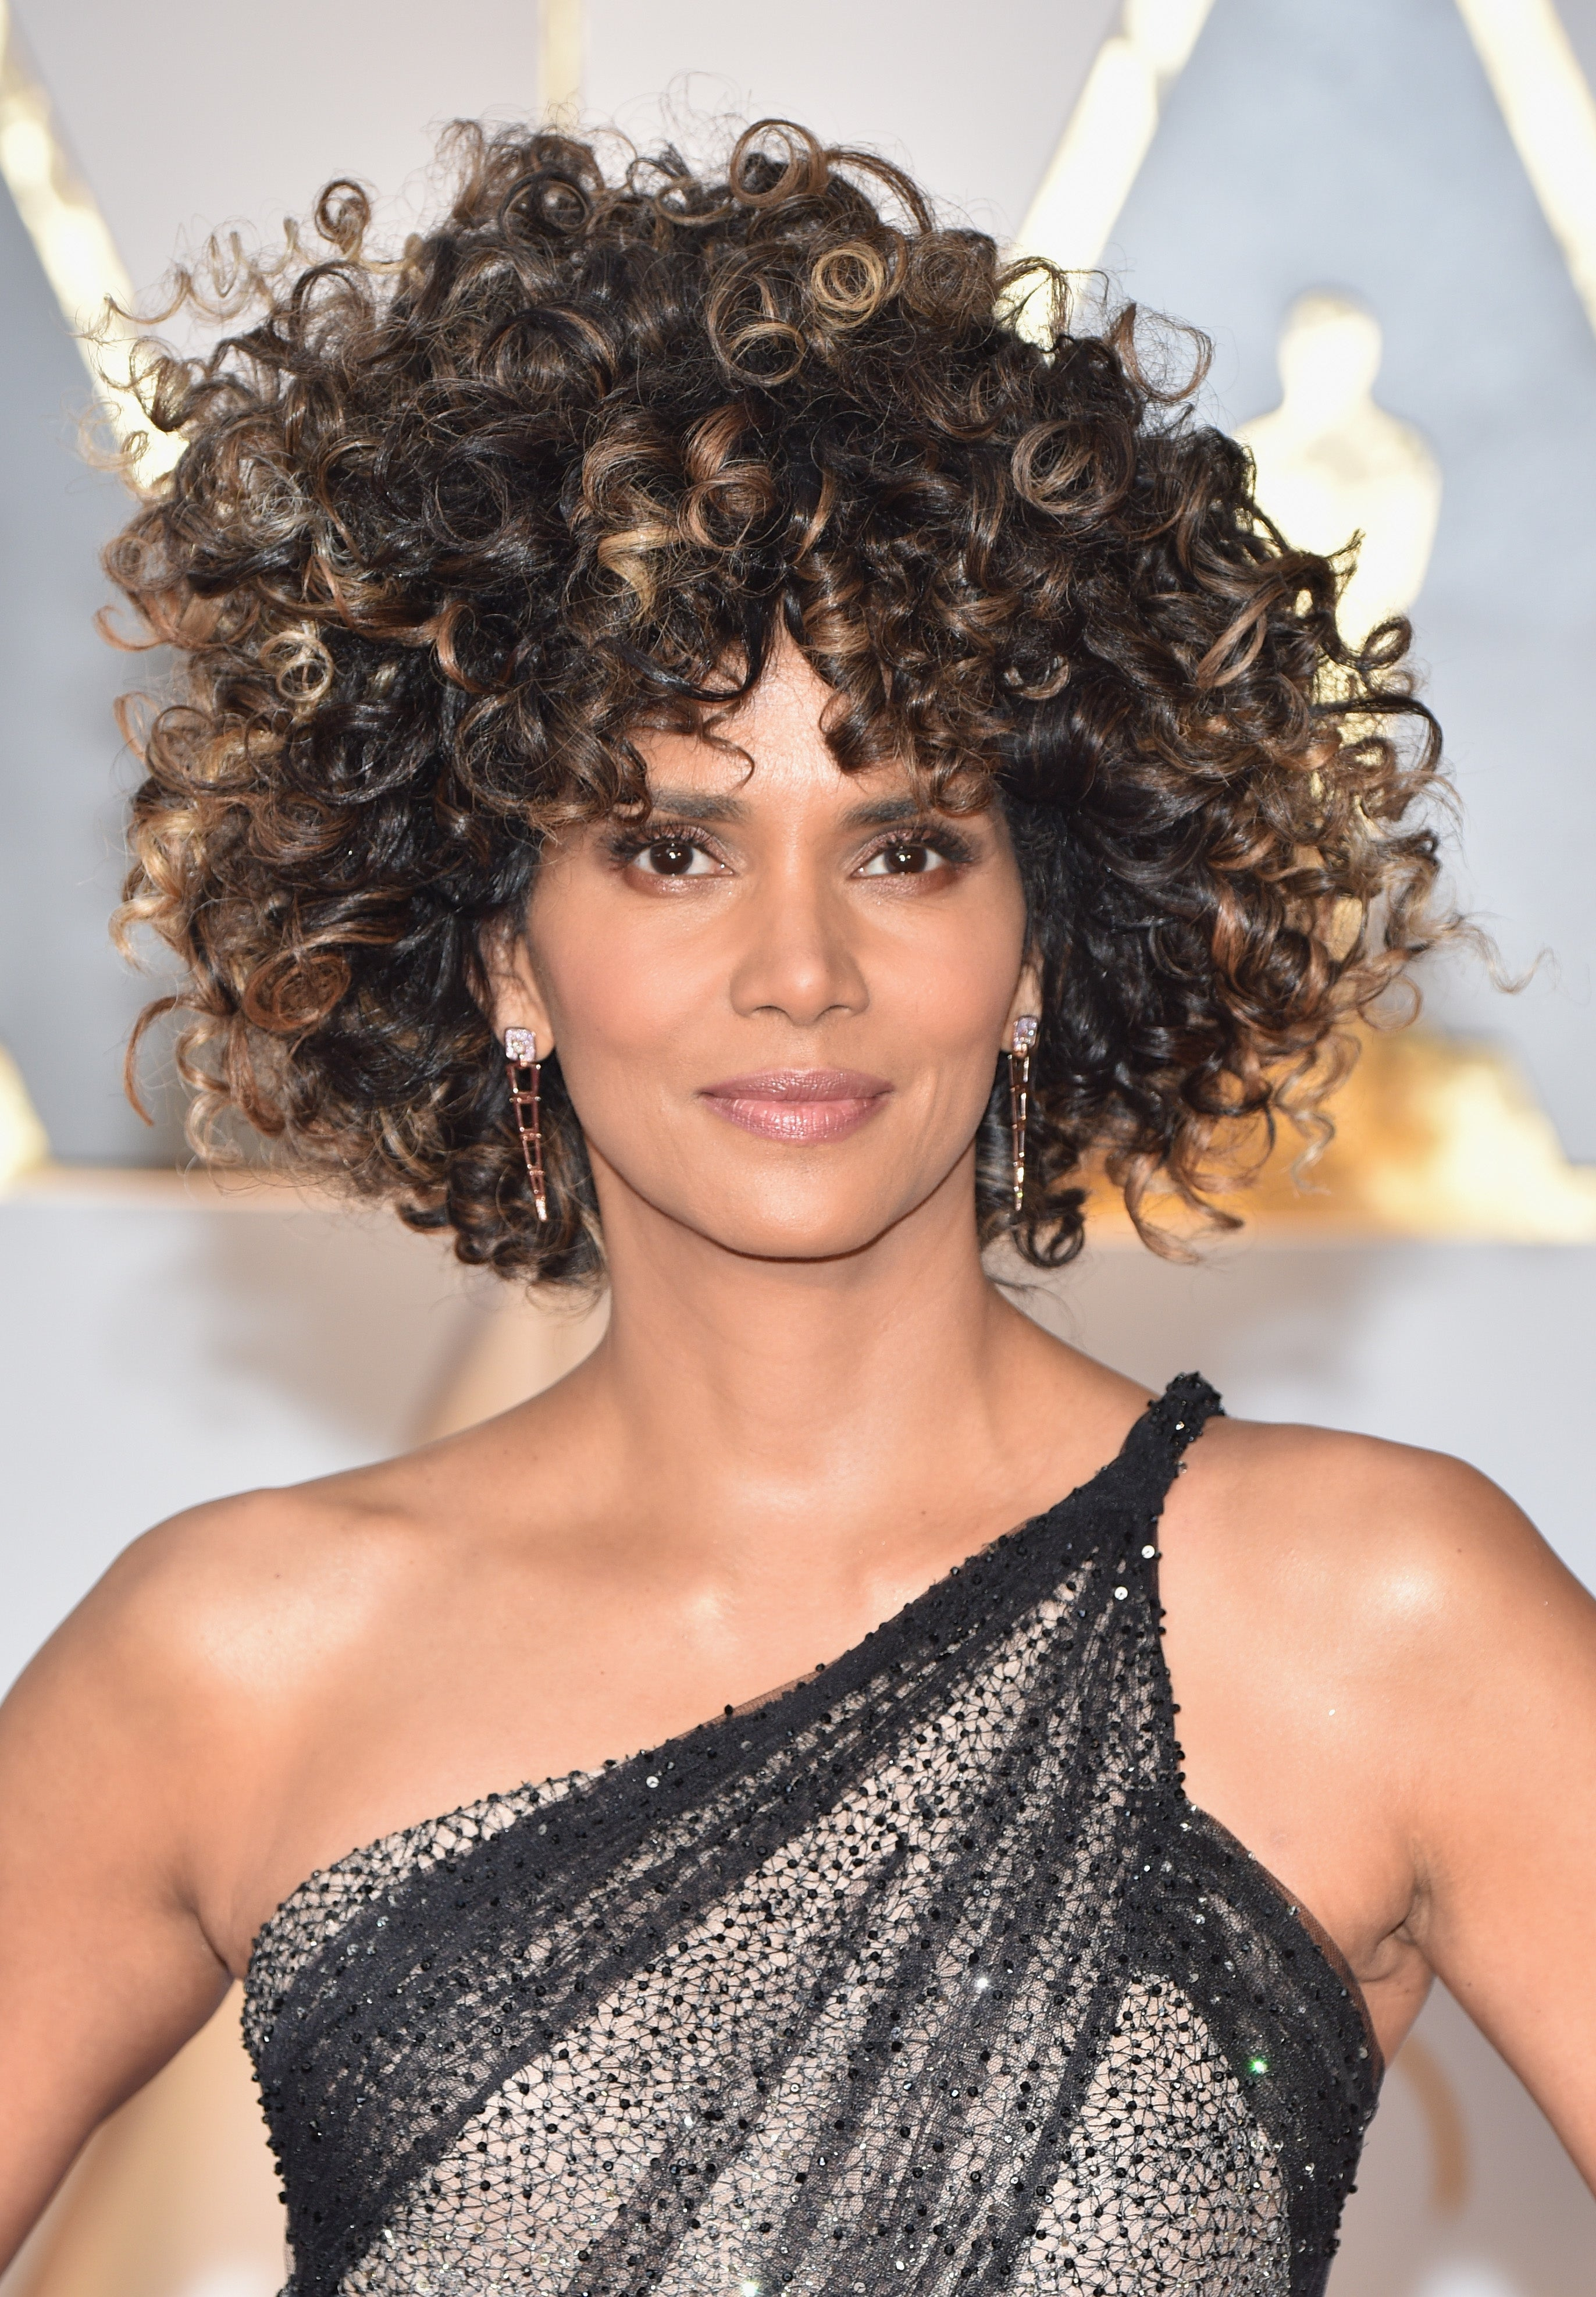 Halle Berry Defends Her Oscar Curls: 'I Celebrate My Natural Hair By Allowing It To Be Wild And Free'